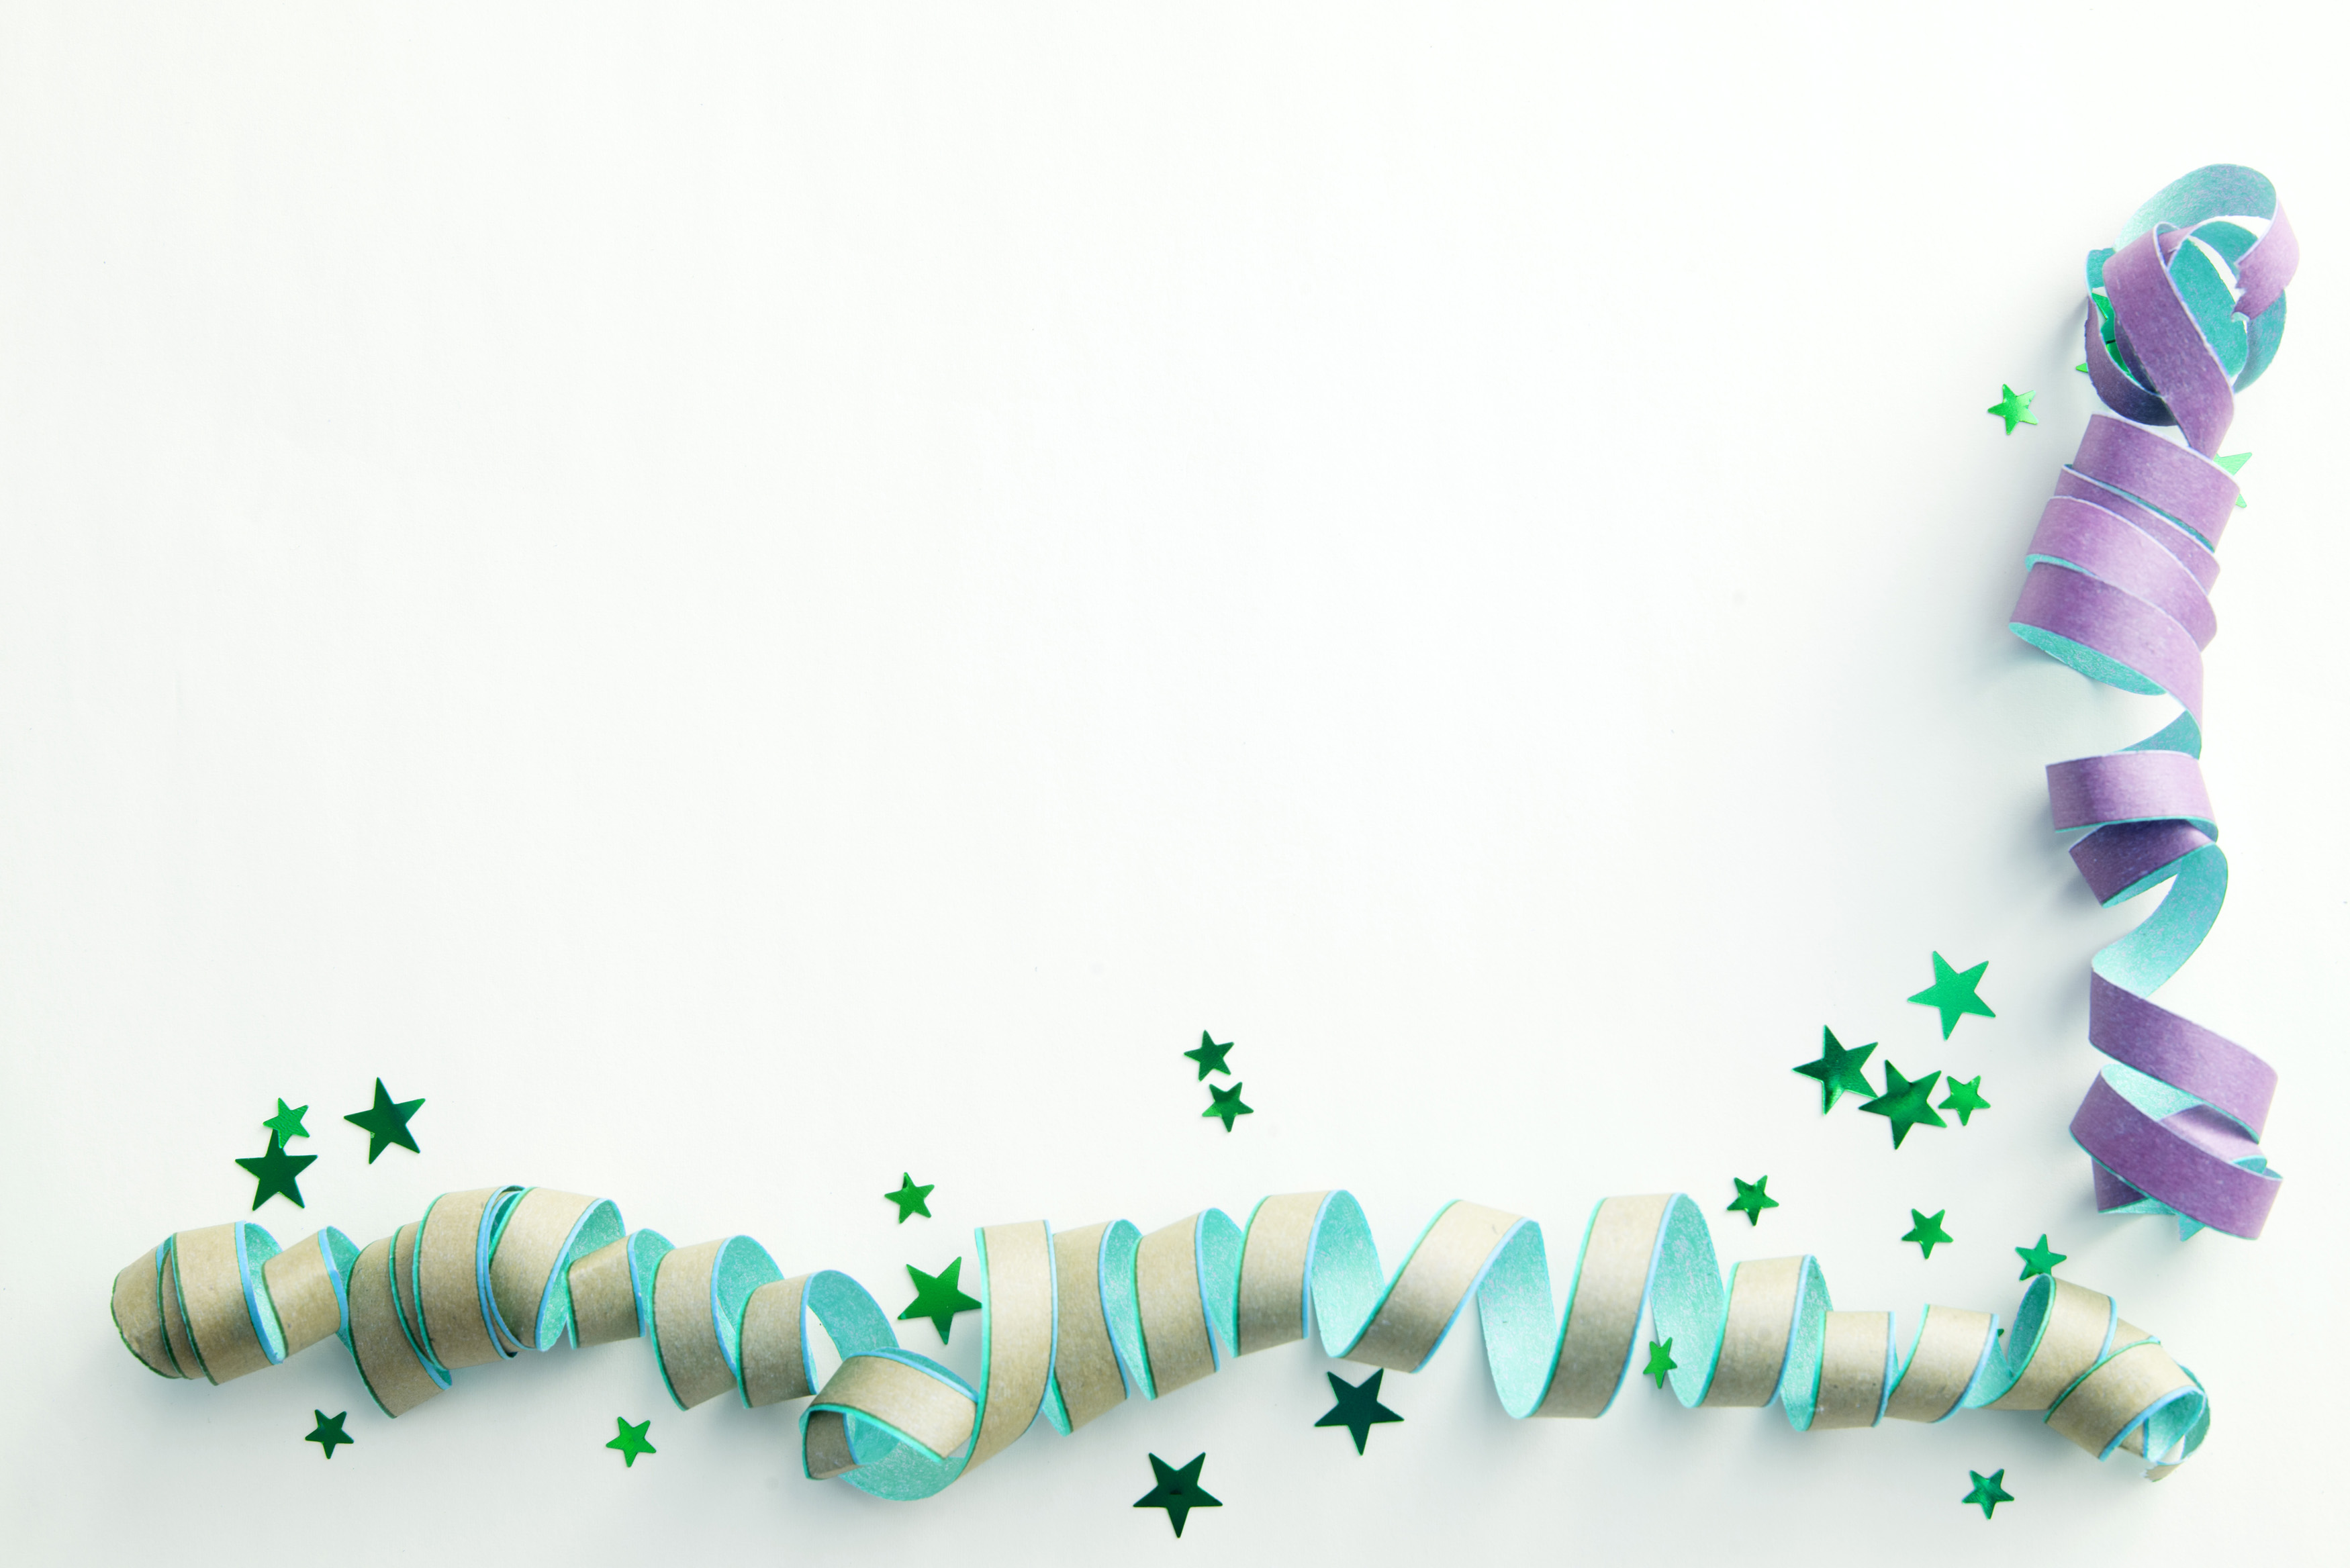 free image of streamers corner border party background